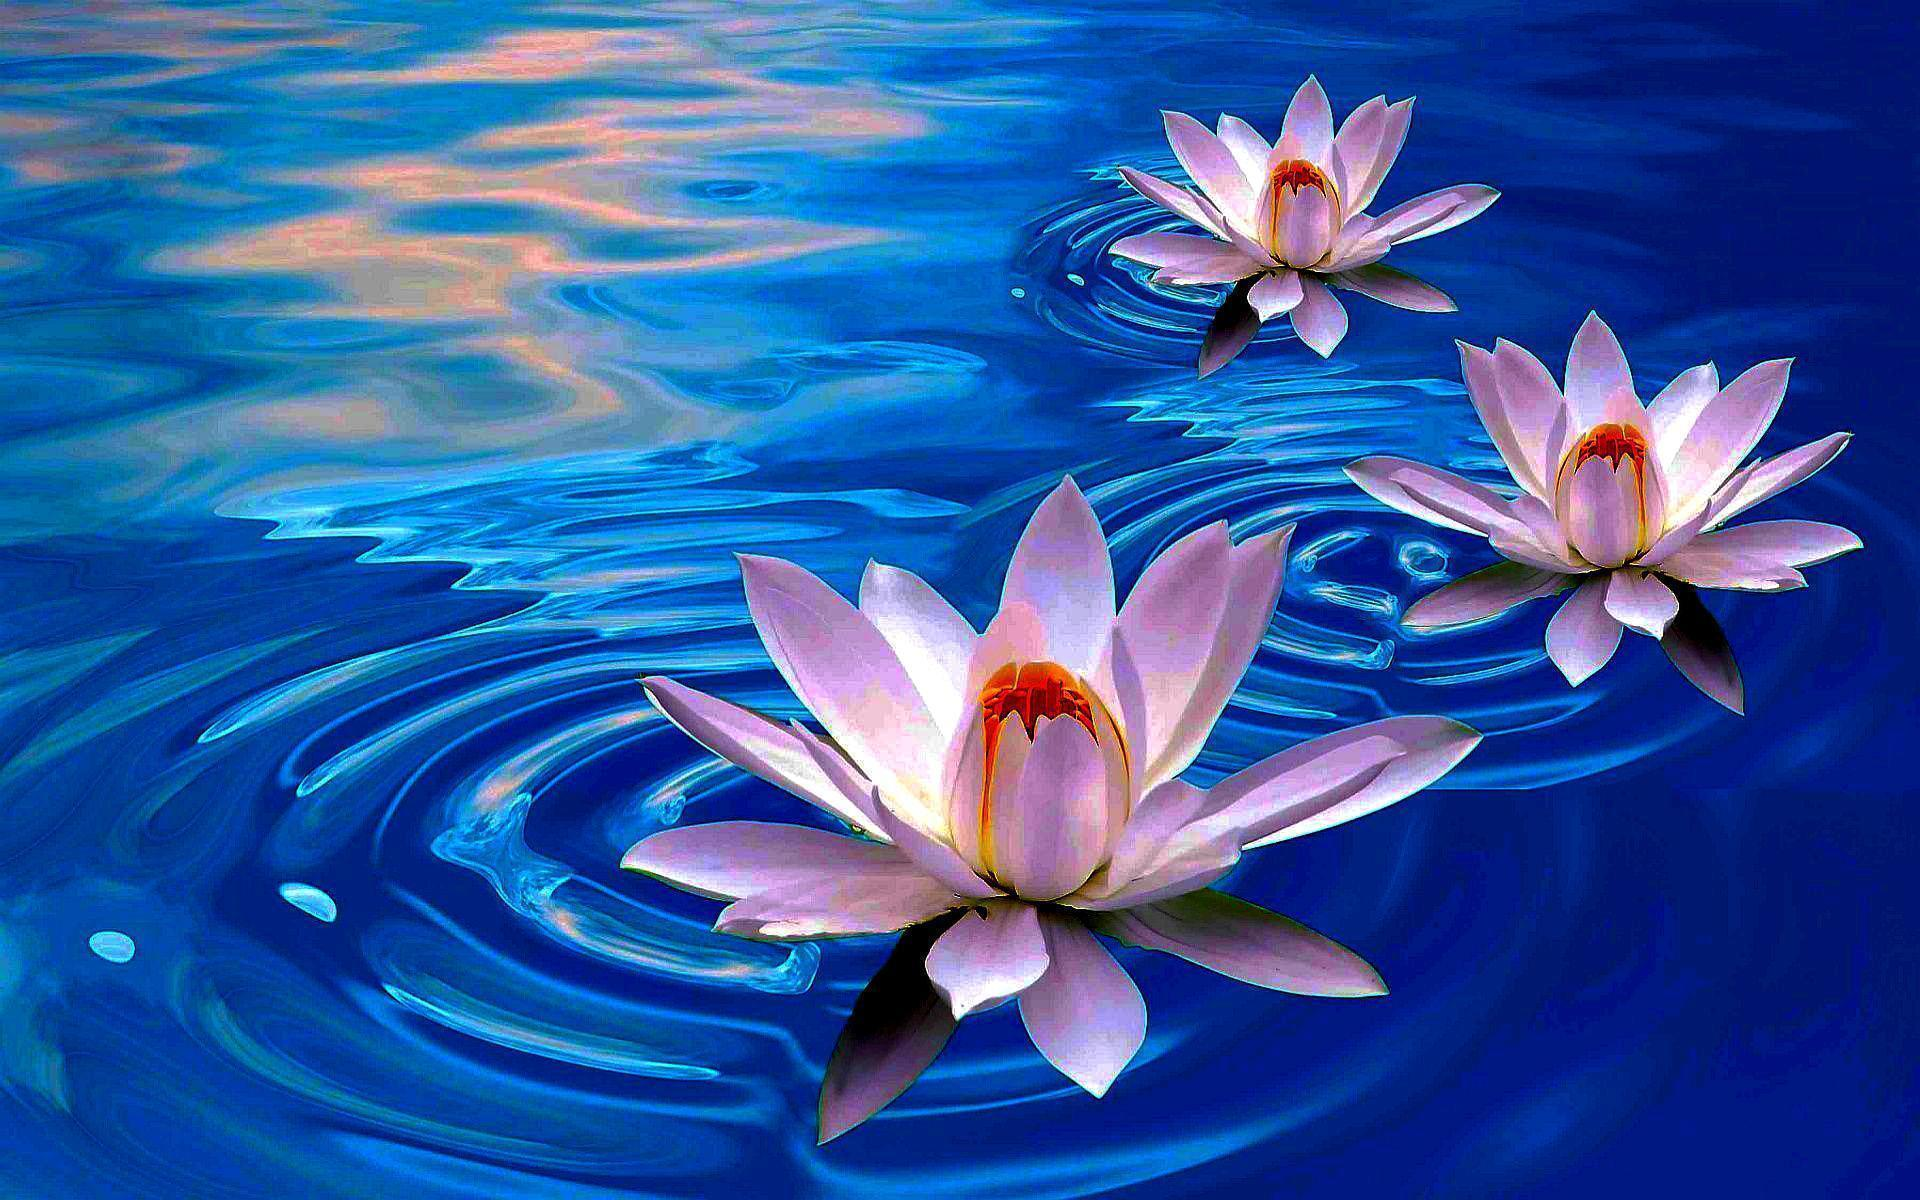 Lotus flower wallpapers wallpaper cave lotus flowers hd wallpapers wallpapers top 10 mightylinksfo